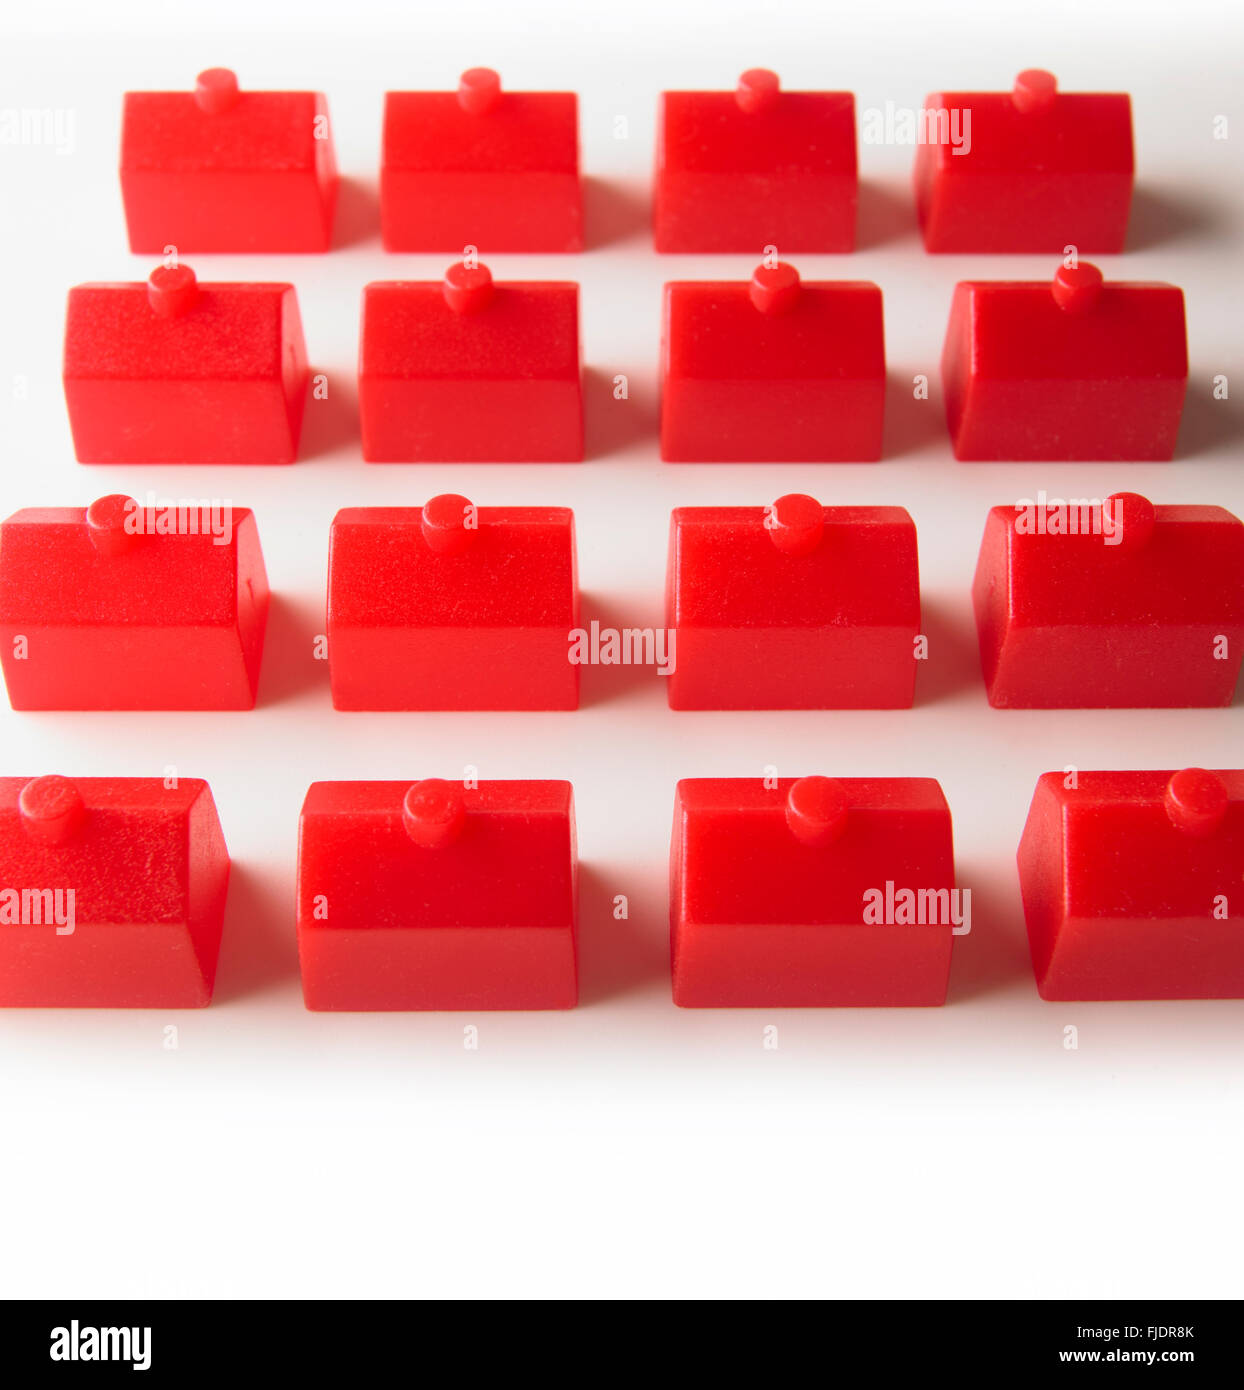 Identical red houses in a grid plan - Stock Image